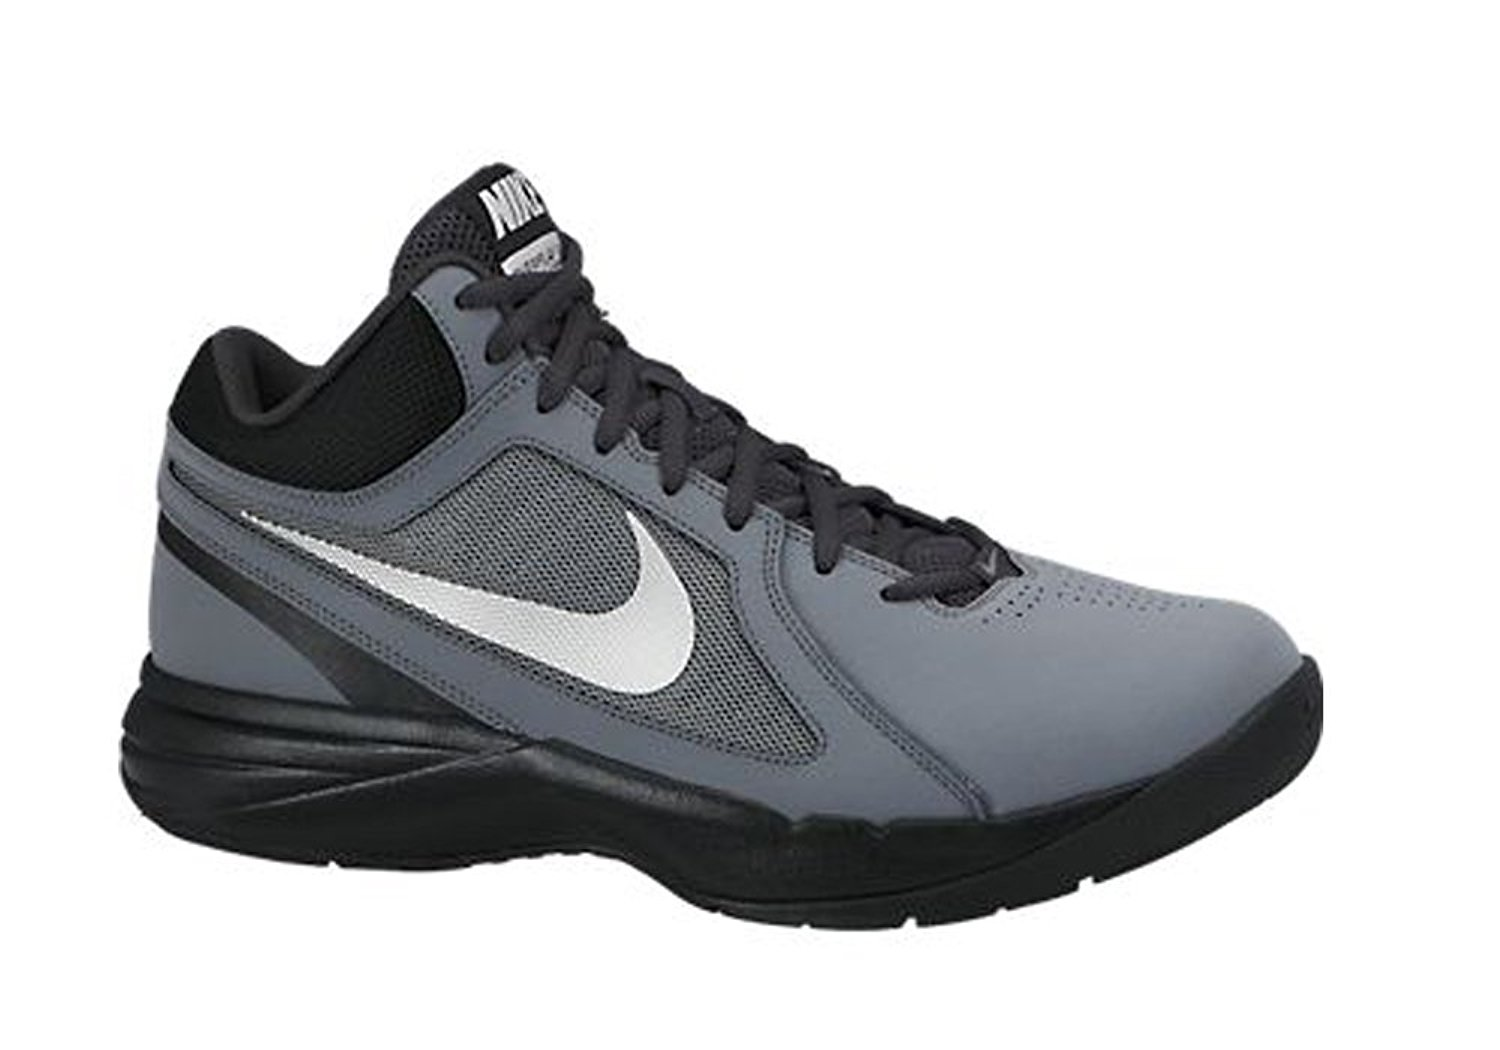 8c5b3c36e141 Get Quotations · Nike Men s the Overplay Viii Nbk